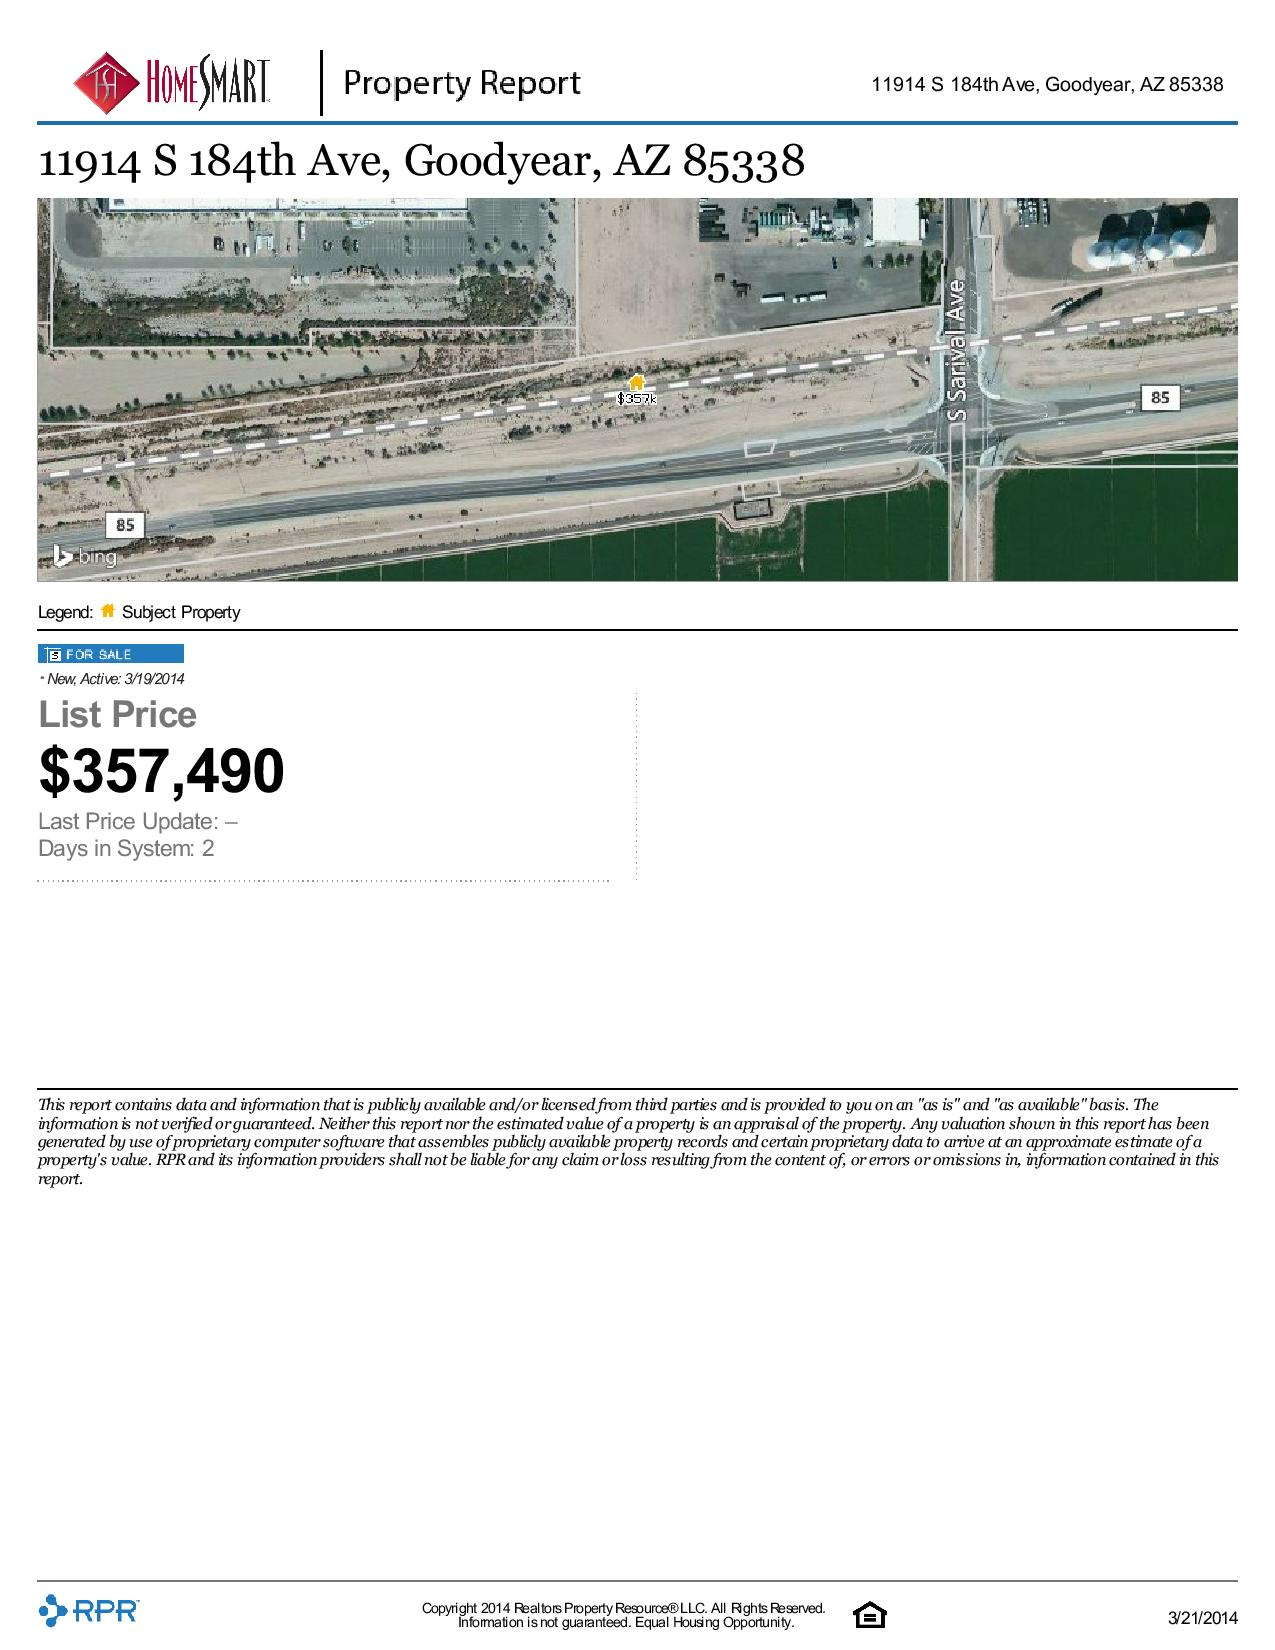 11914-S-184th-Ave-Goodyear-AZ-85338-page-002